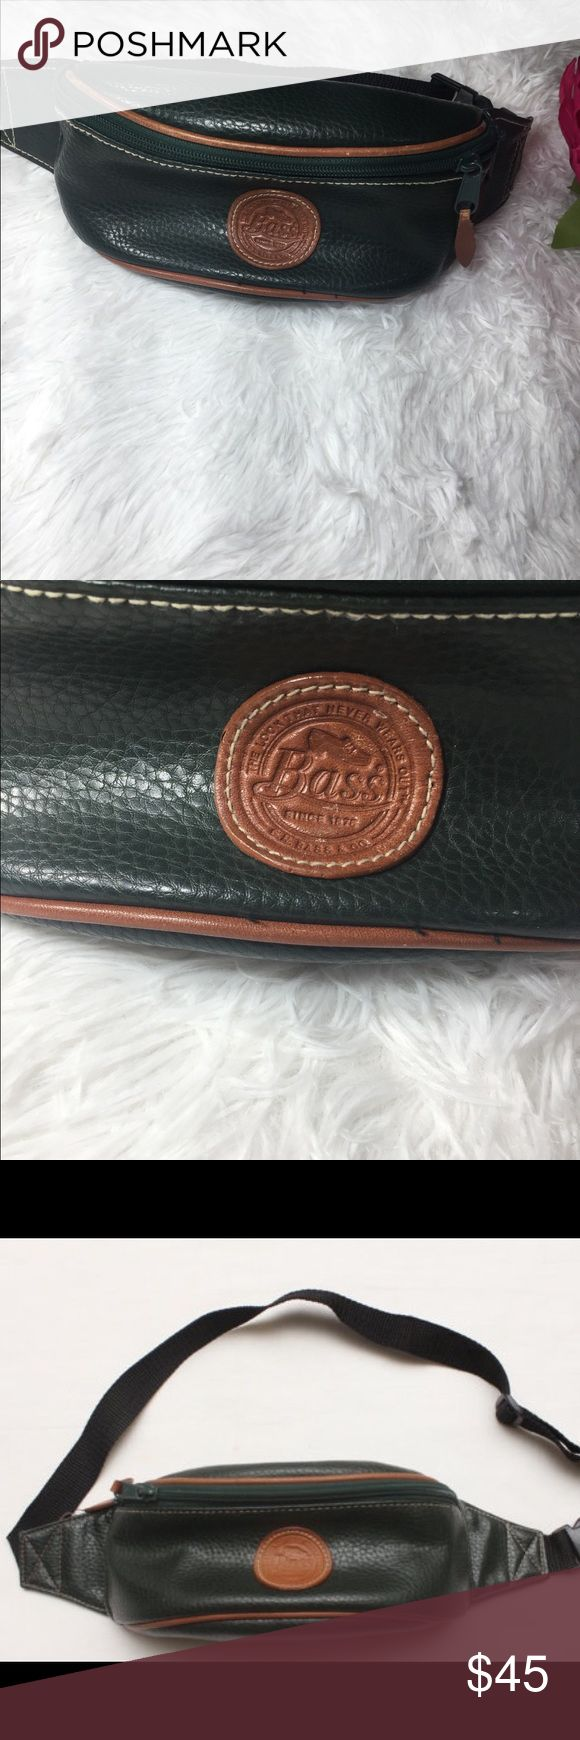 """Rare 90's Vintage Green Genuine Leather Fanny Pack Rare 90's Vintage Green Genuine Leather Fanny Pack Rare 90's Vintage """"BASS"""" Green Genuine Faux Leather Fanny Pack  COLOR: GREEN & TAN  CONDITION: EXCELLENT  MATERIAL: FAUX LEATHER  SIZE: ONE SIZE FITS ALL  MEASUREMENTS: (IN INCHES) LENGTH- 9.5"""" HEIGHT- 3.5"""" Vintage Bags"""